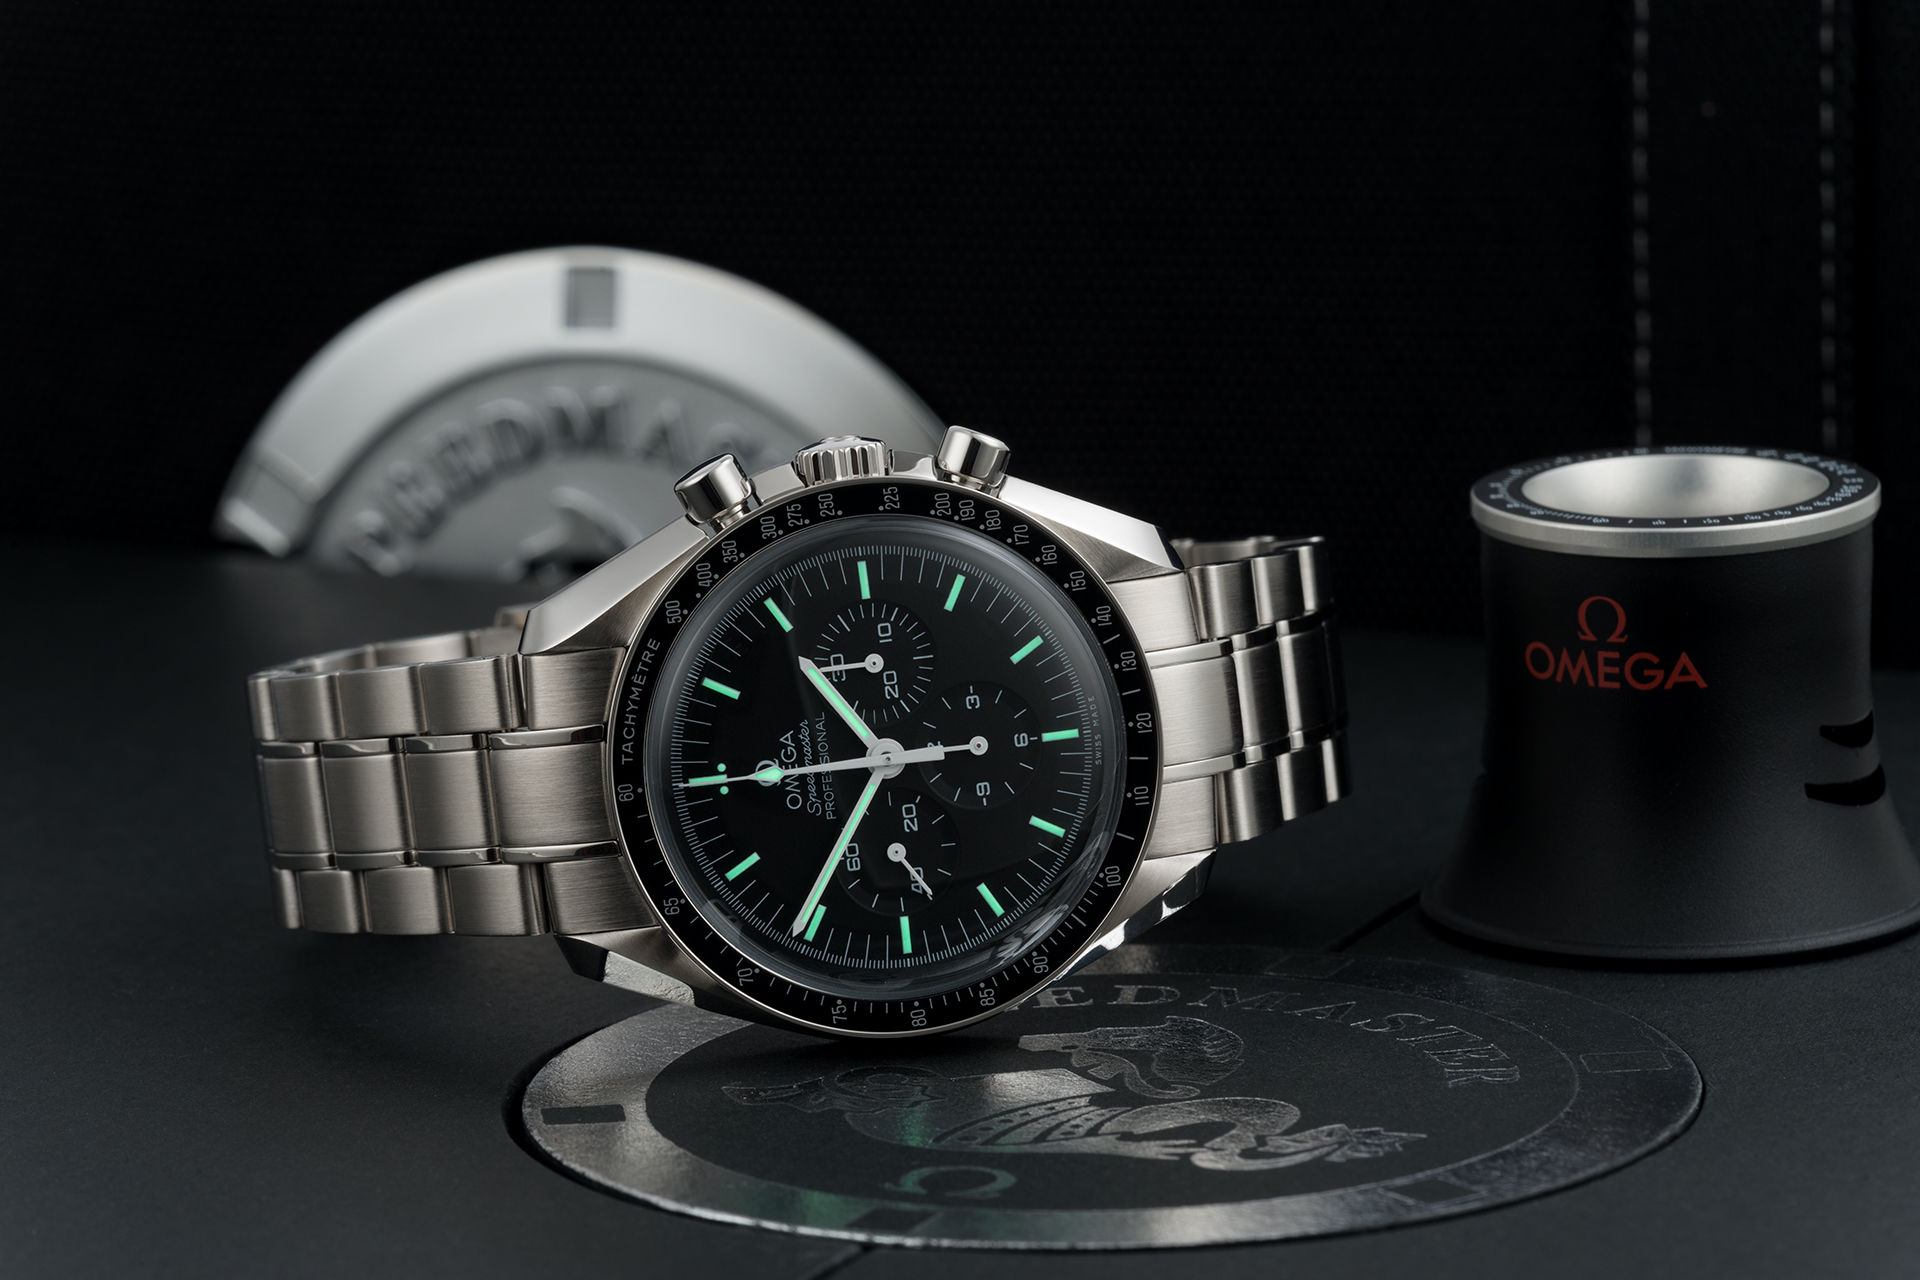 watches vuec chrono the omega sp product moon moonwatch speedmaster chronograph